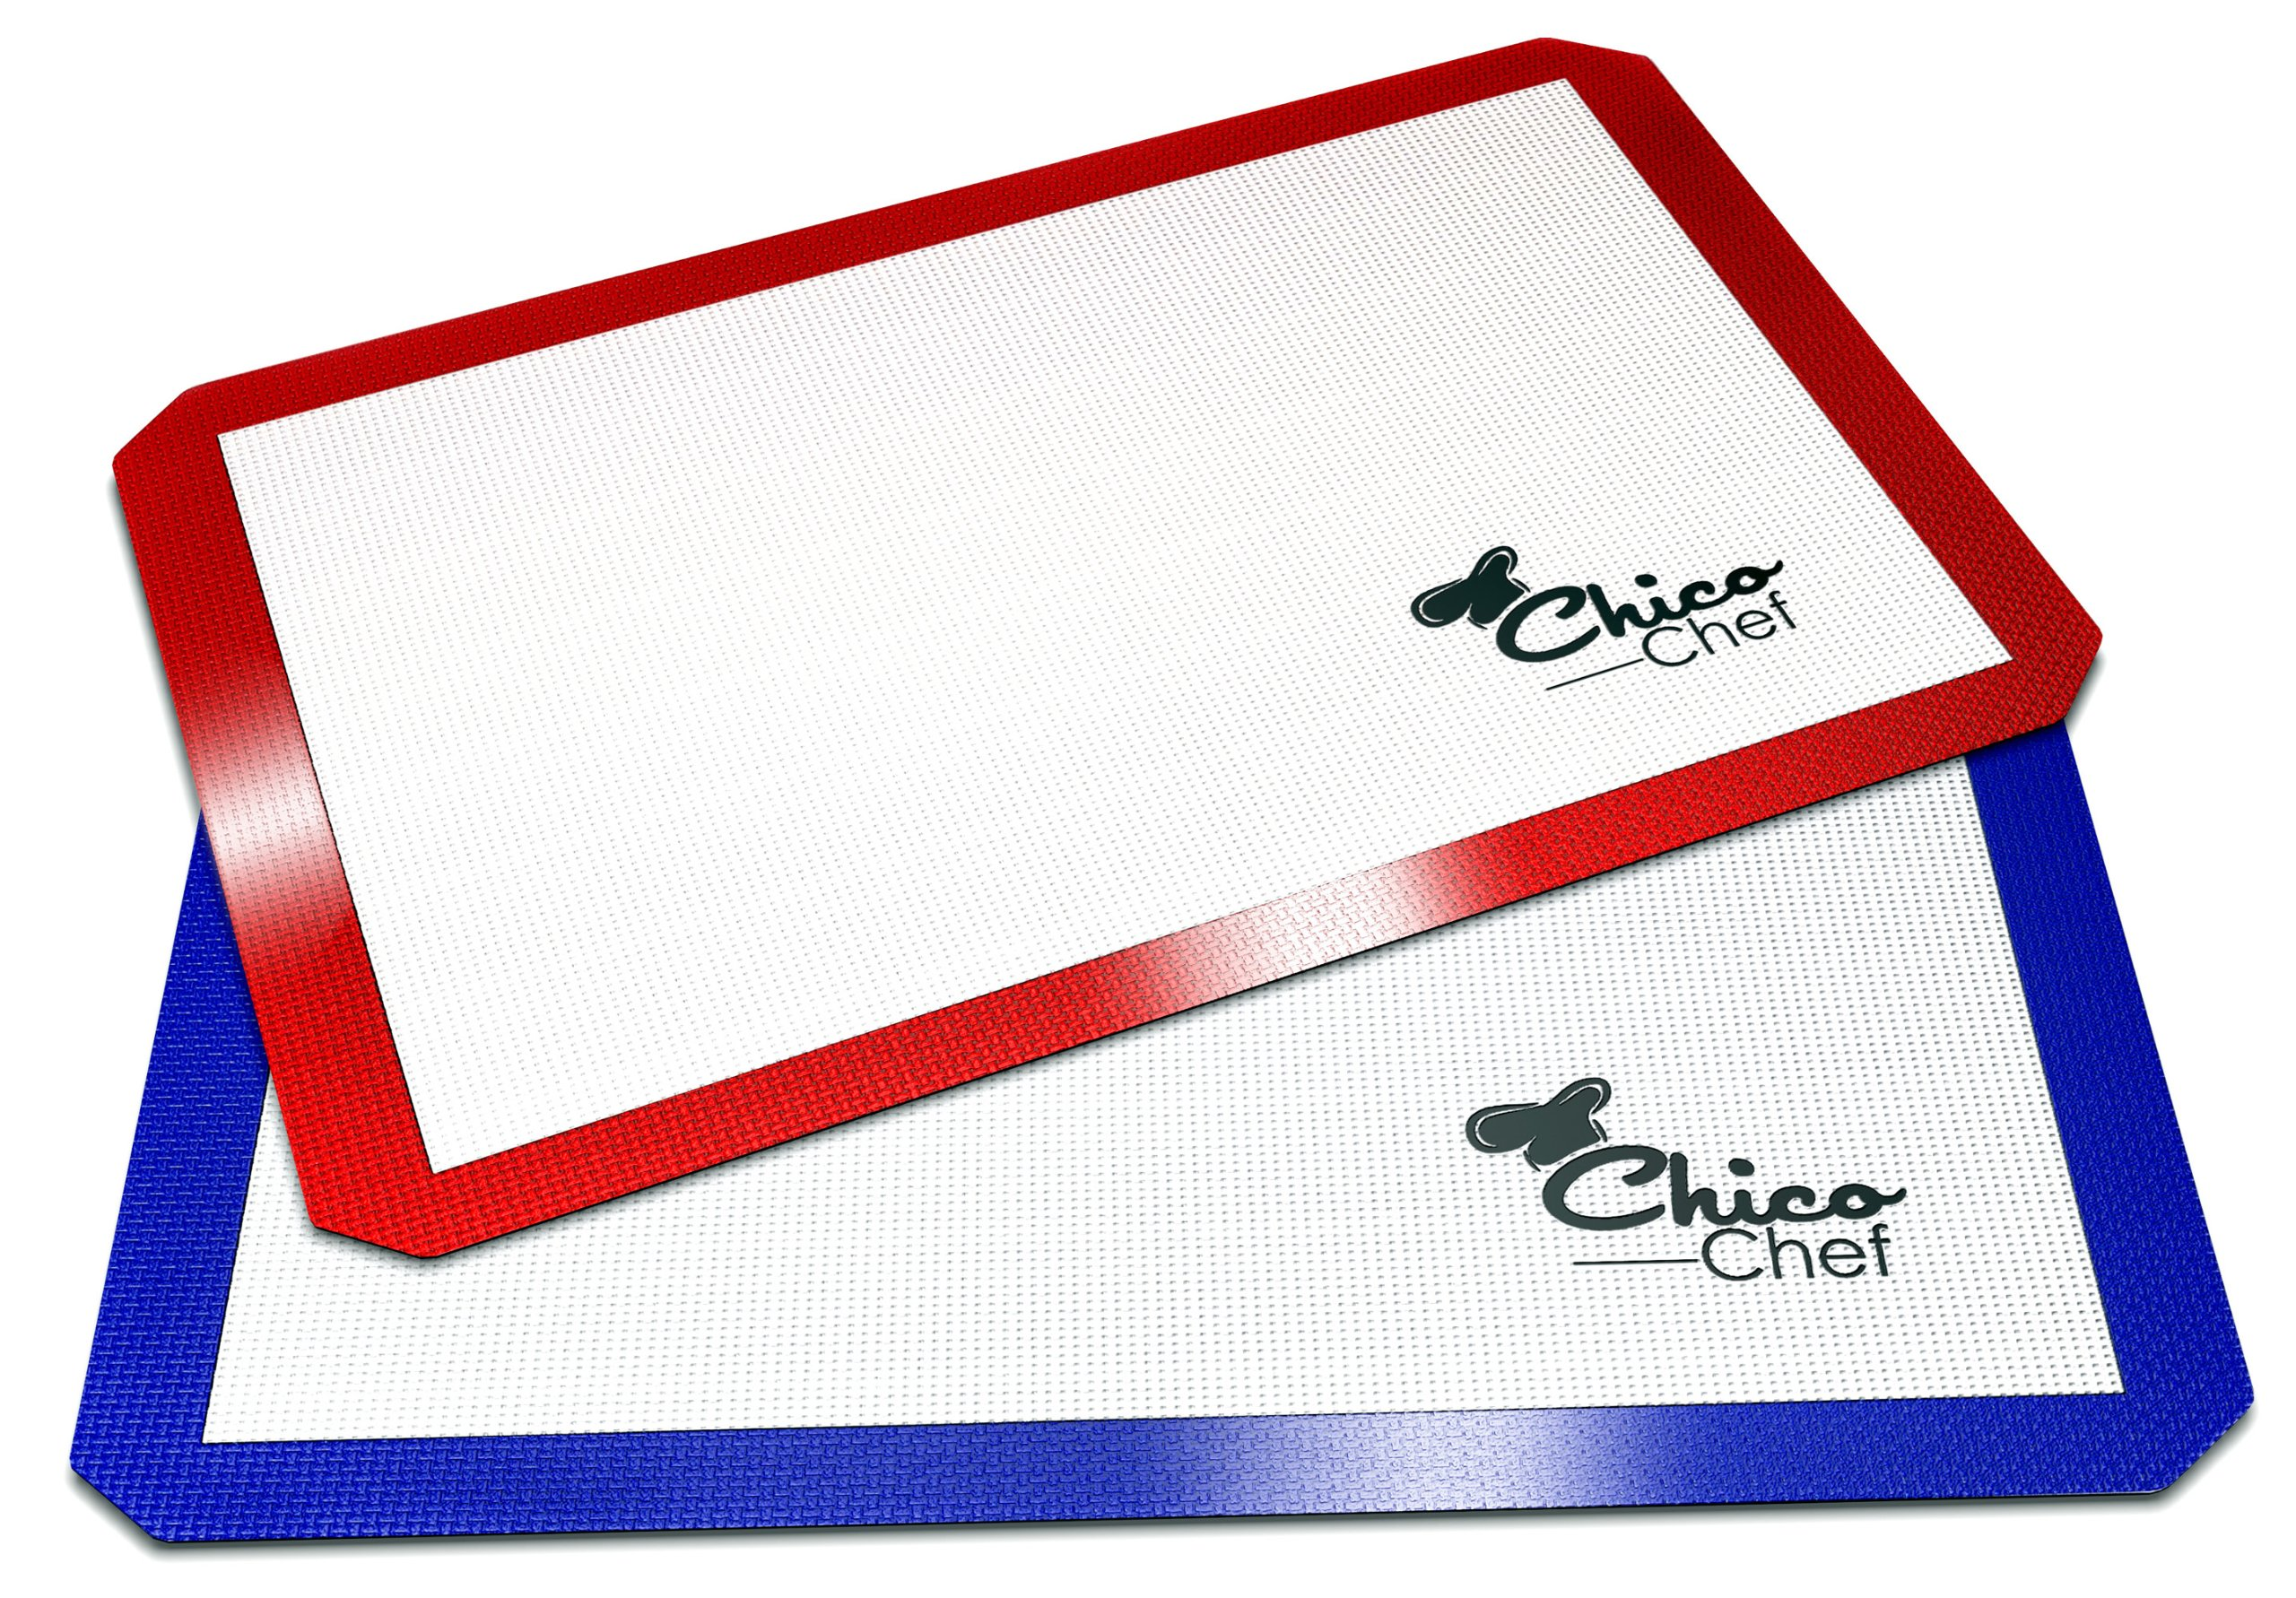 Silicone Baking Mat 2-Pk - Fits Half Sheets - Blue, Red colors - Bonus Cookbook, Lifetime Guarantee